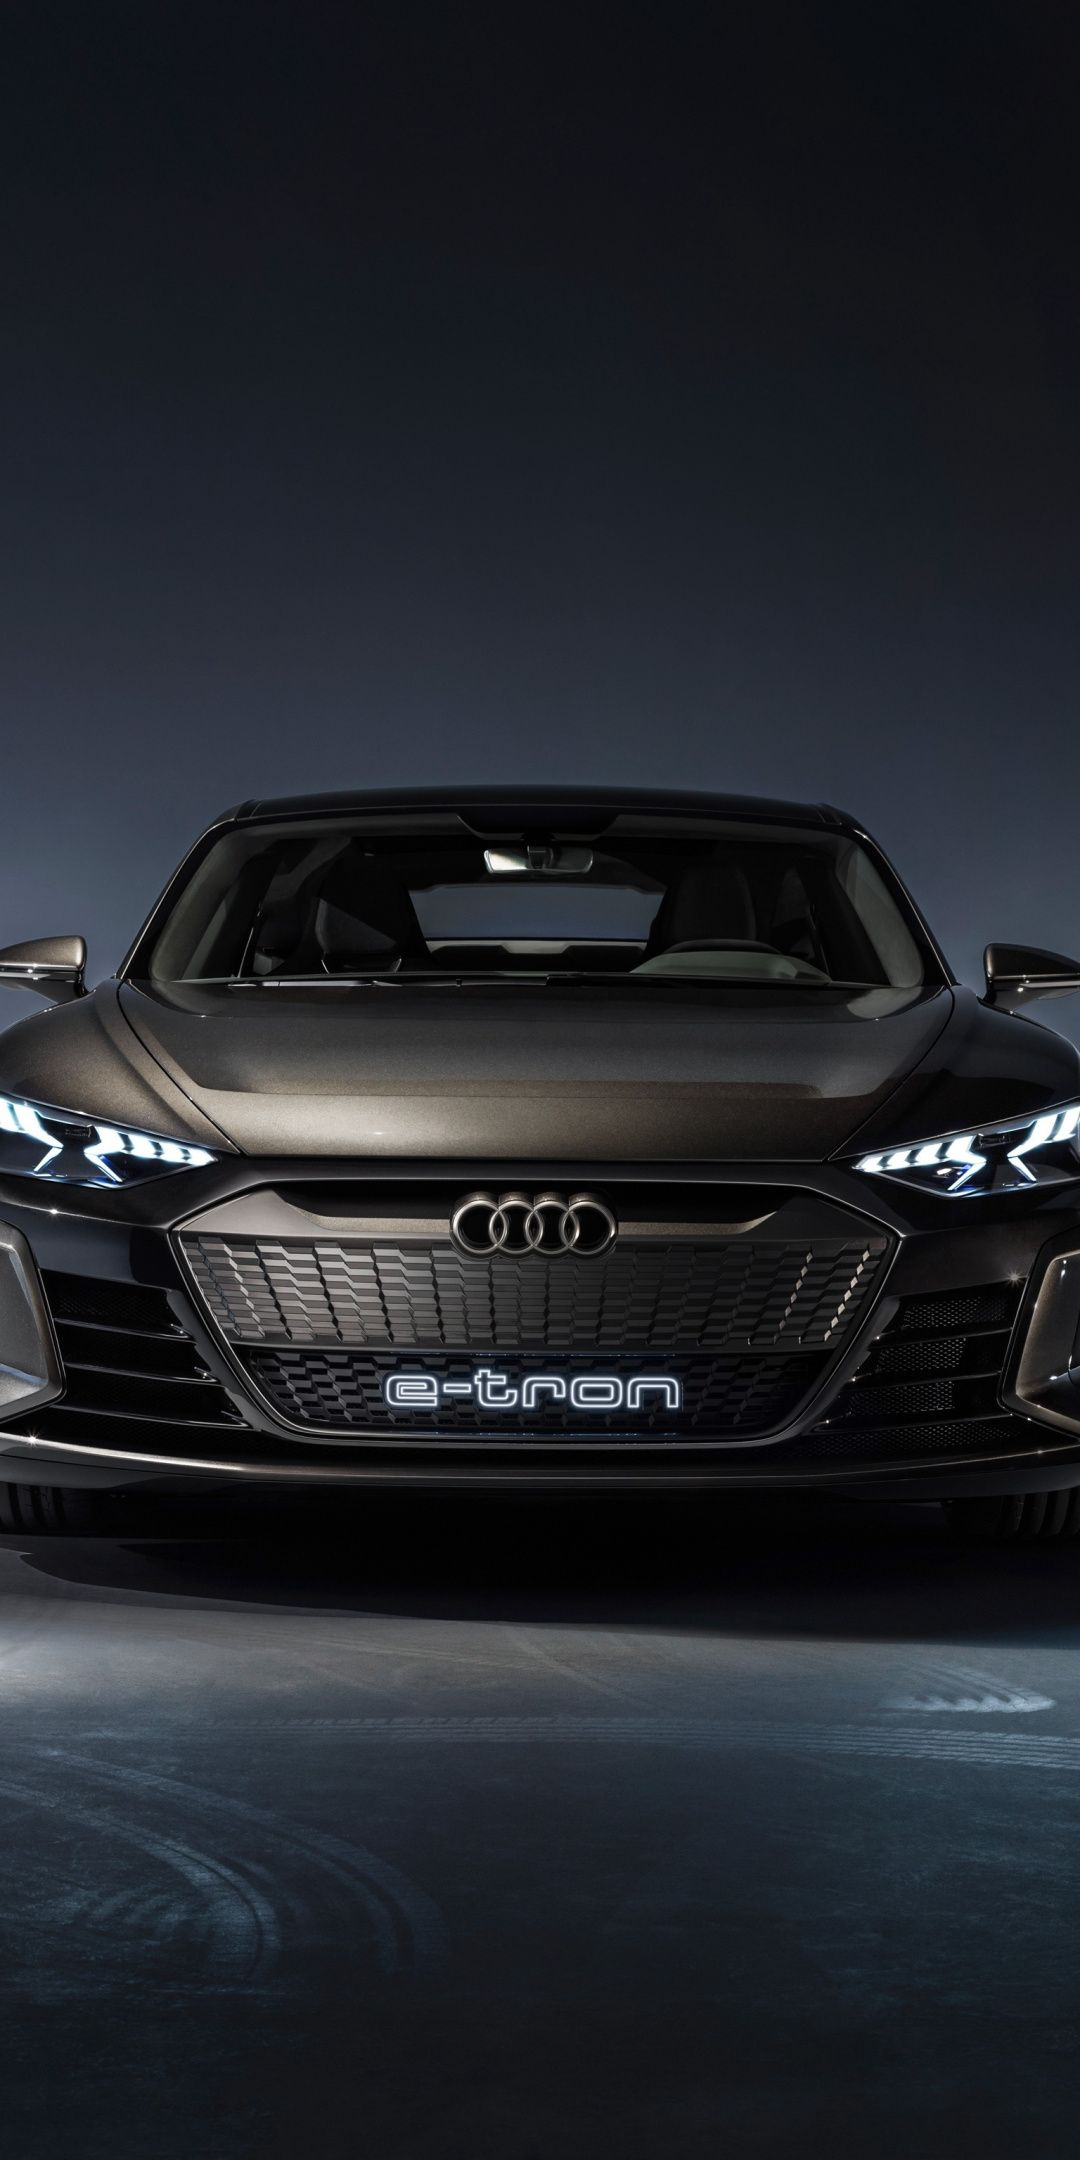 Audi E Tron Gt Concept Car 2019 1080x2160 Wallpaper Cars